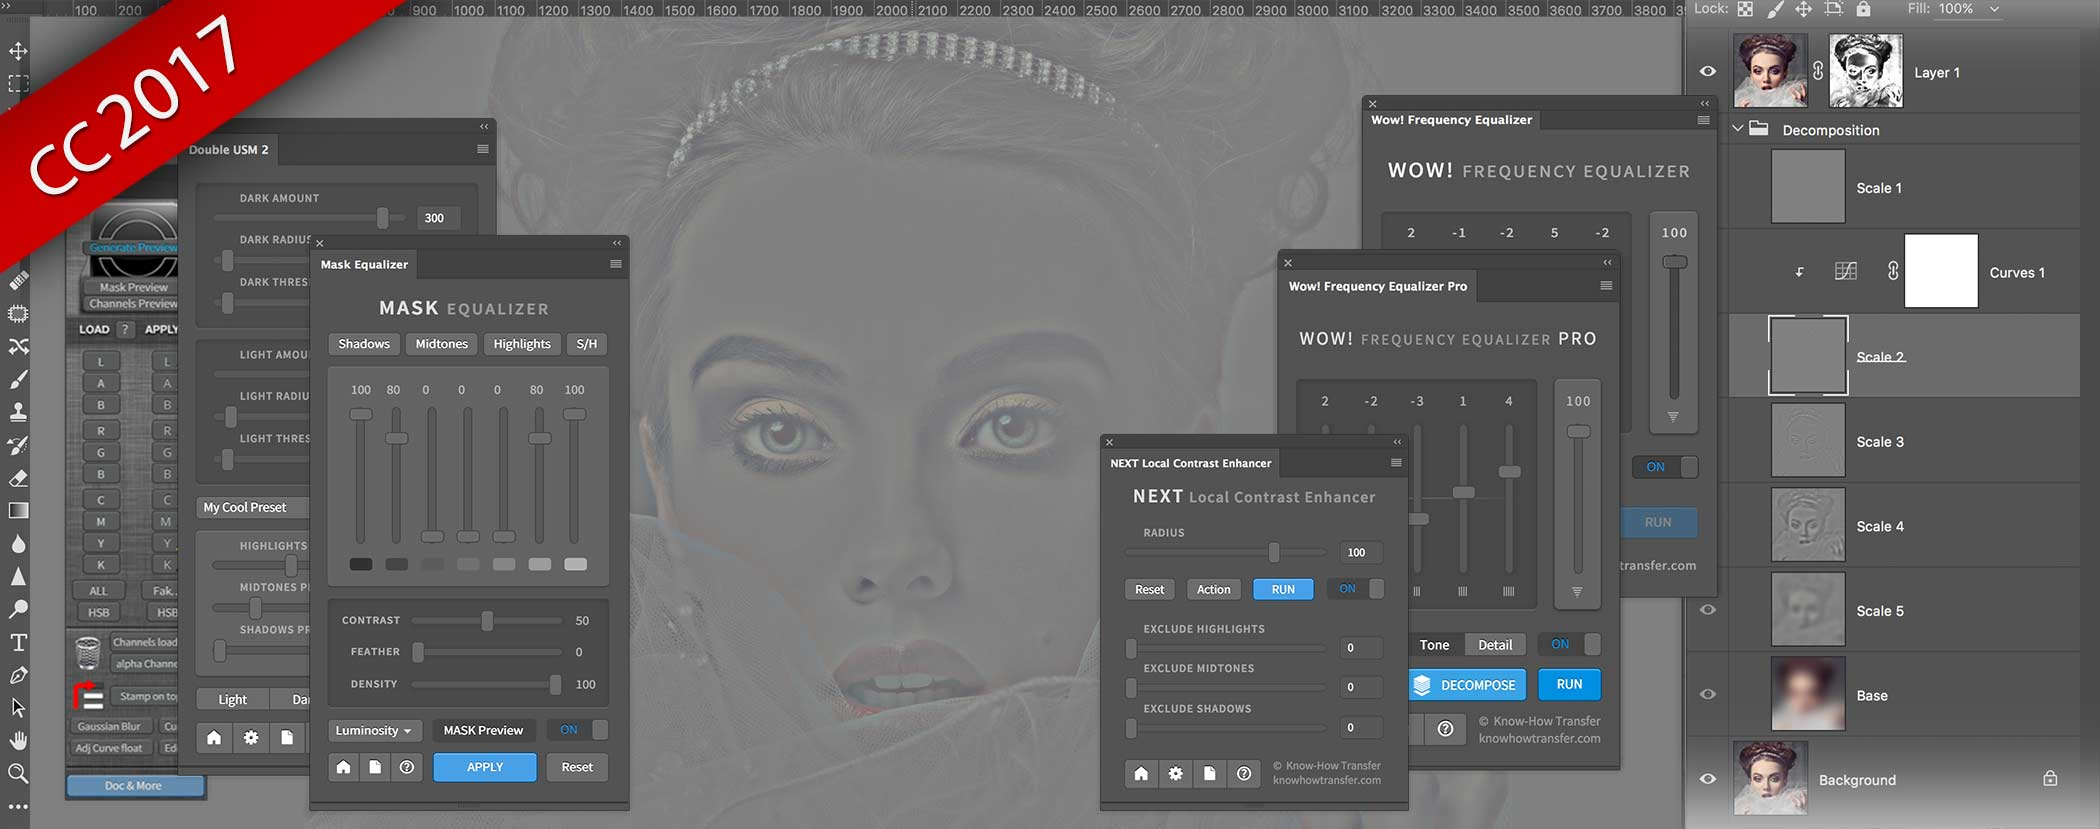 Know-How Transfer Plugins and Extensions Panels all CC 2017, OSX Sierra and WIN10 compatible including the last plugin NEXT Local Contrast Enhancer